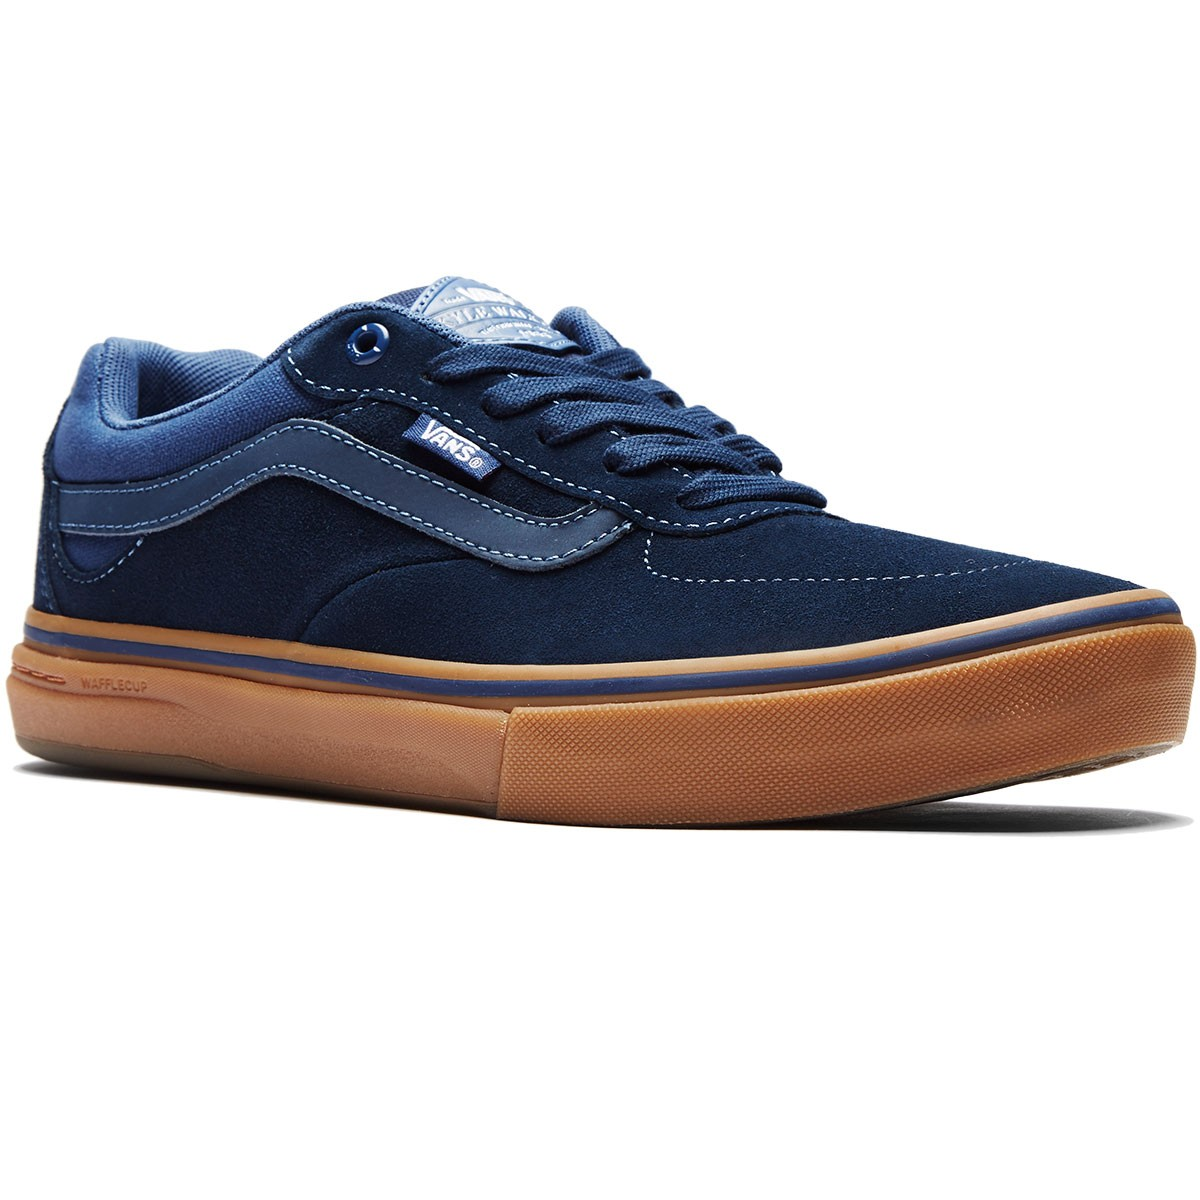 5f68f8e501 Vans Kyle Walker Pro Shoes